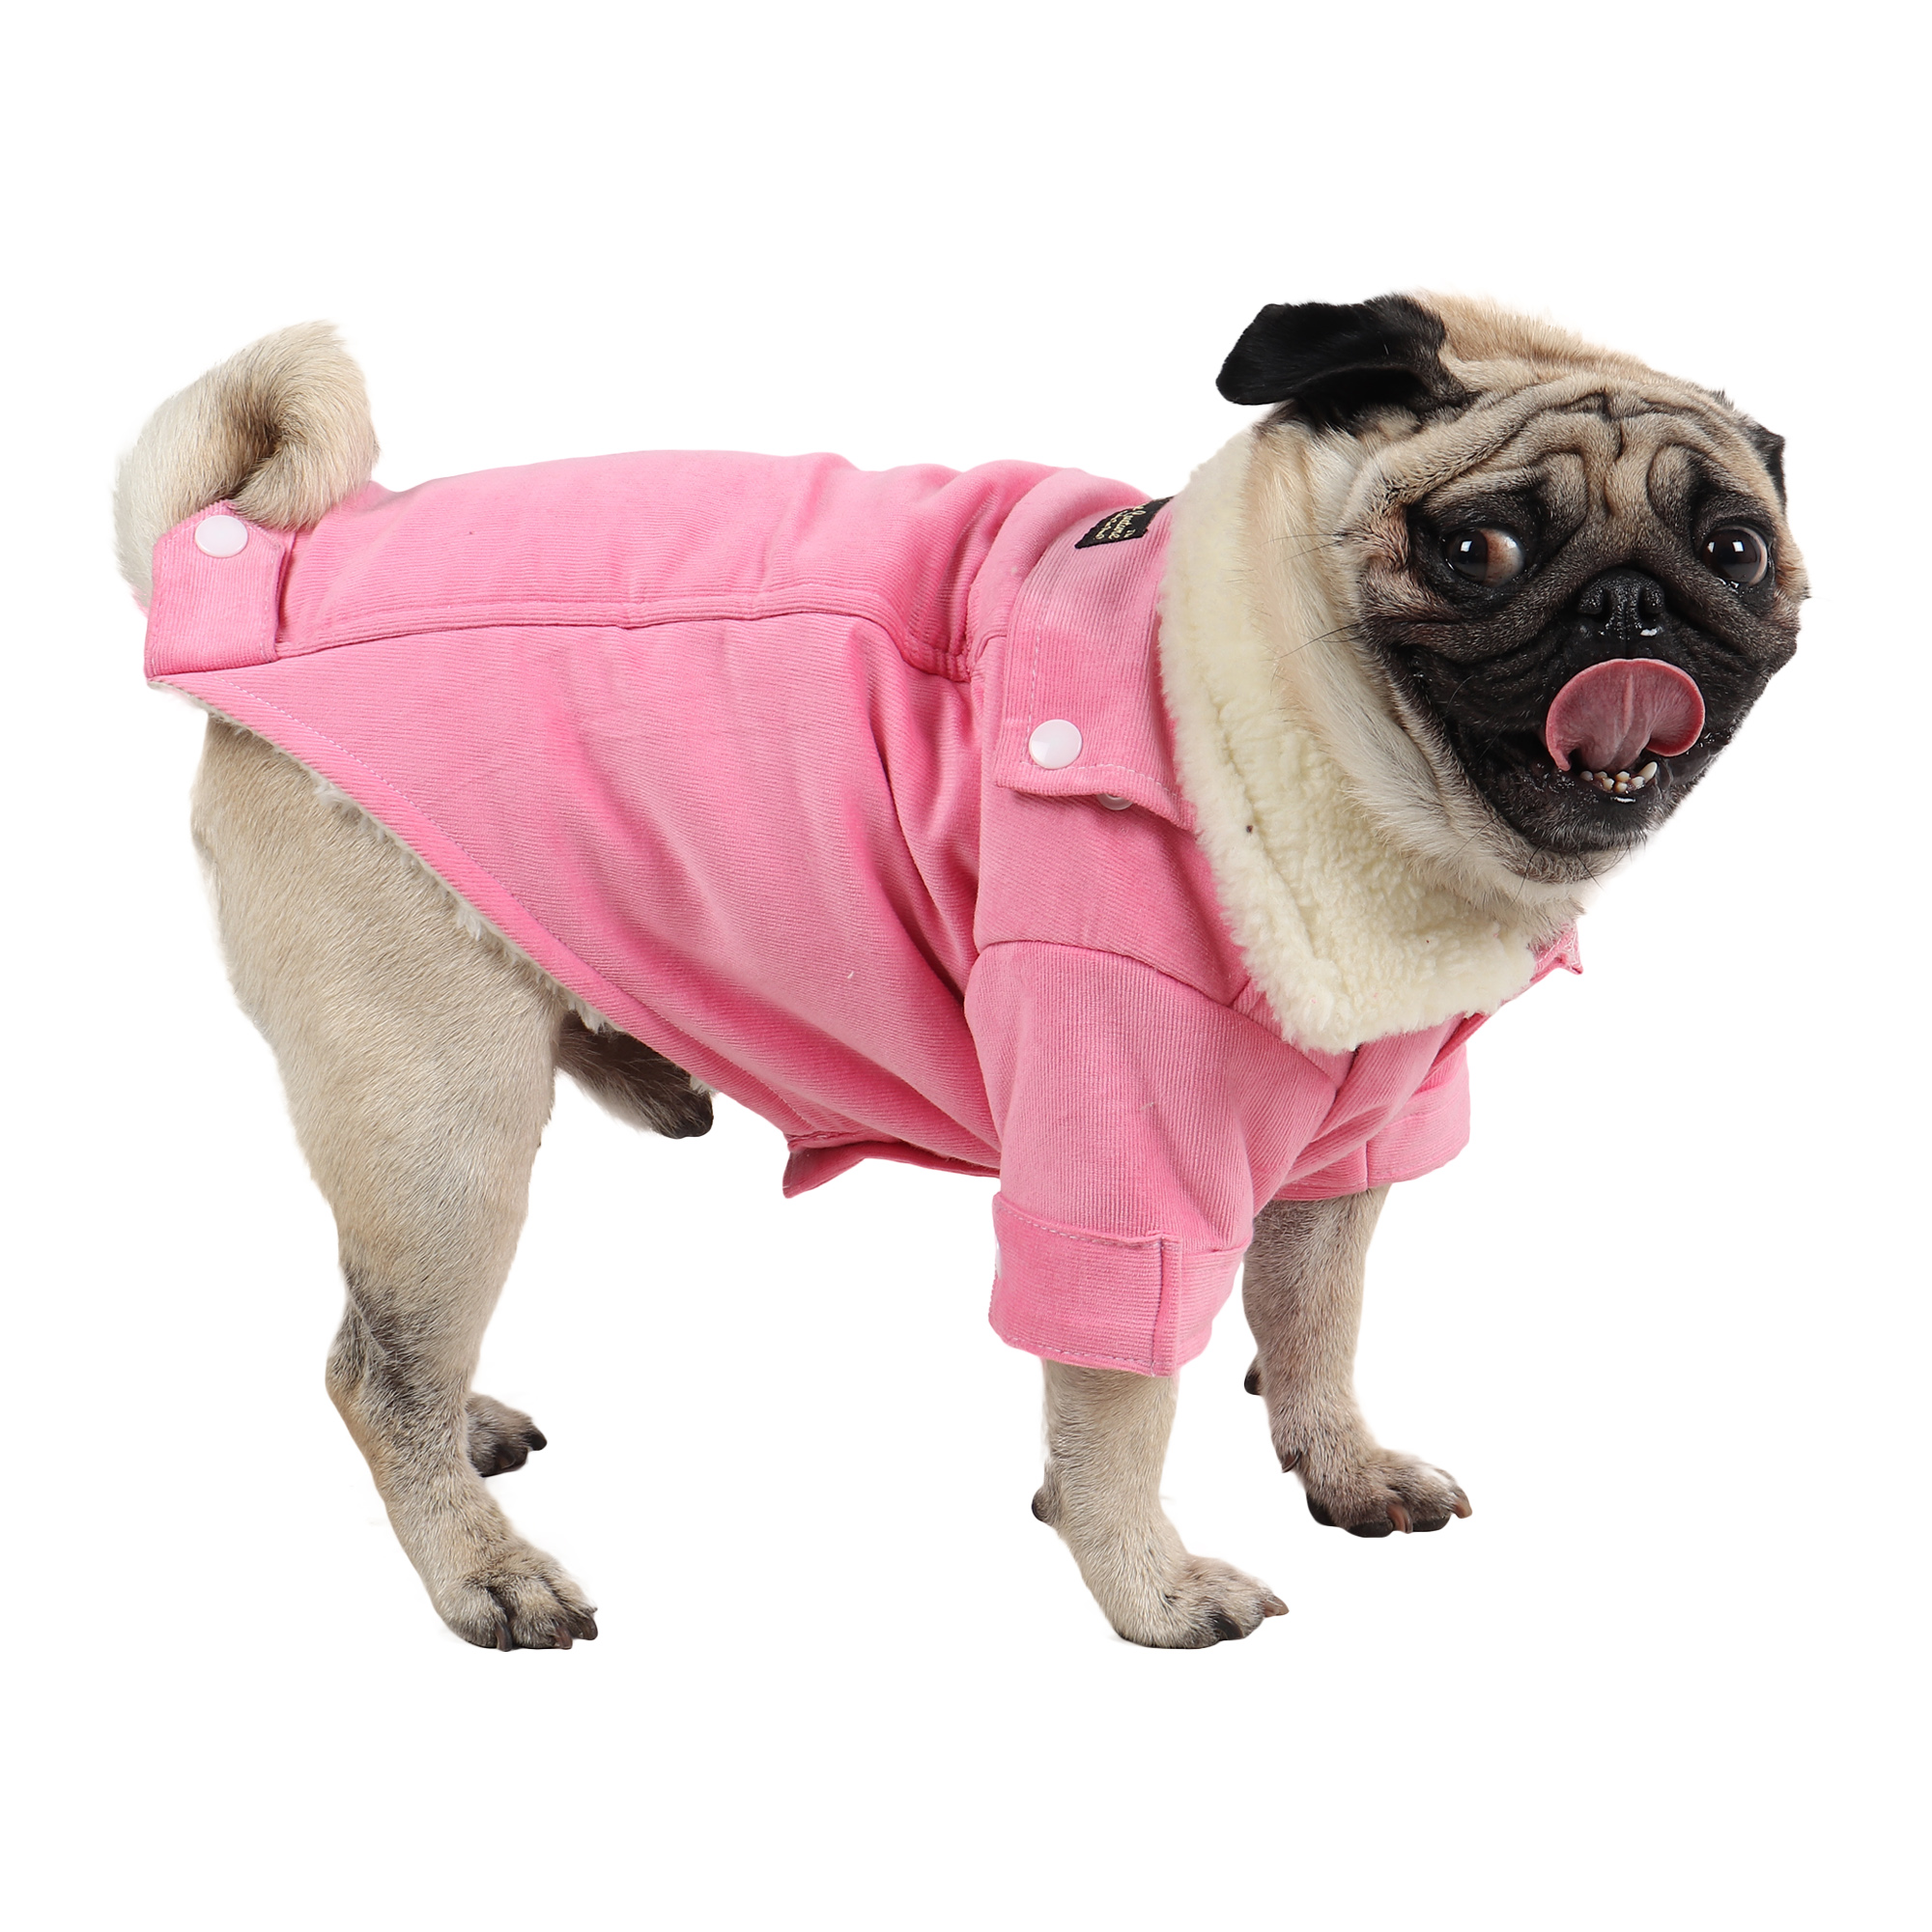 Douge Couture winter warm corduroy jackt for all dogs for cold weather (light pink)